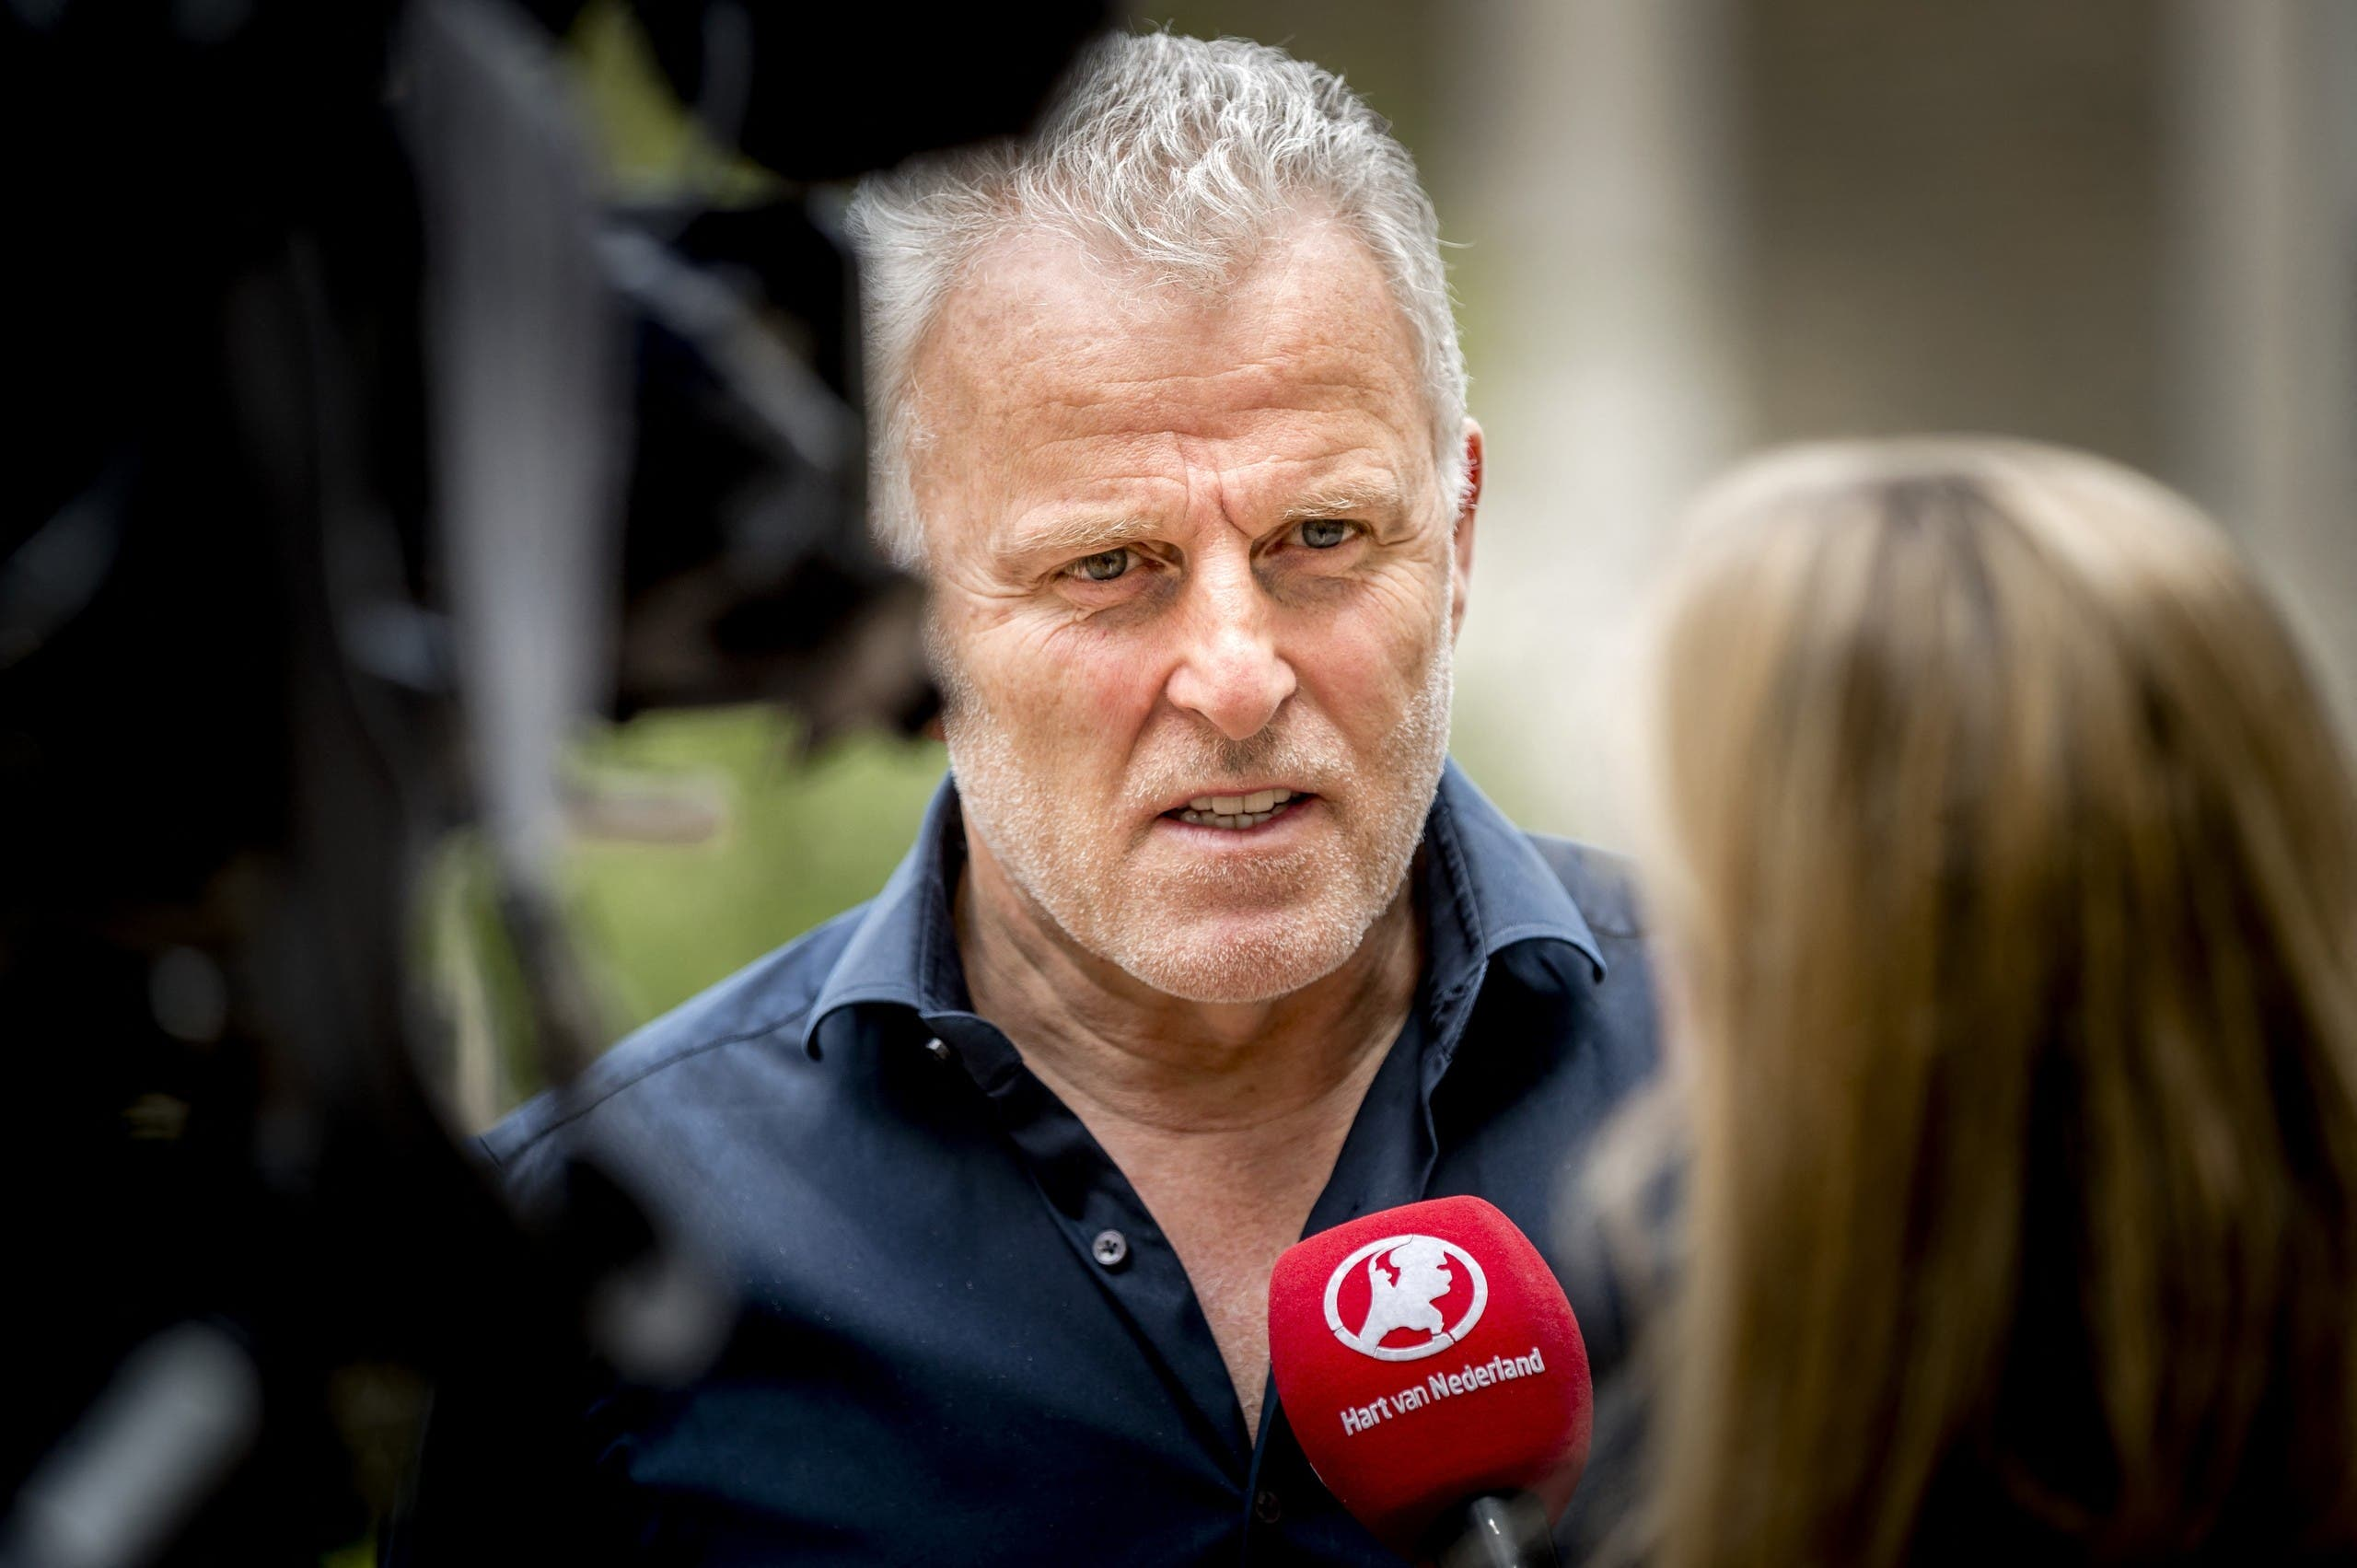 Peter R. de Vries, a journalist and TV presenter, was seriously wounded in a shooting on July 6, 2021. (File photo: AFP)